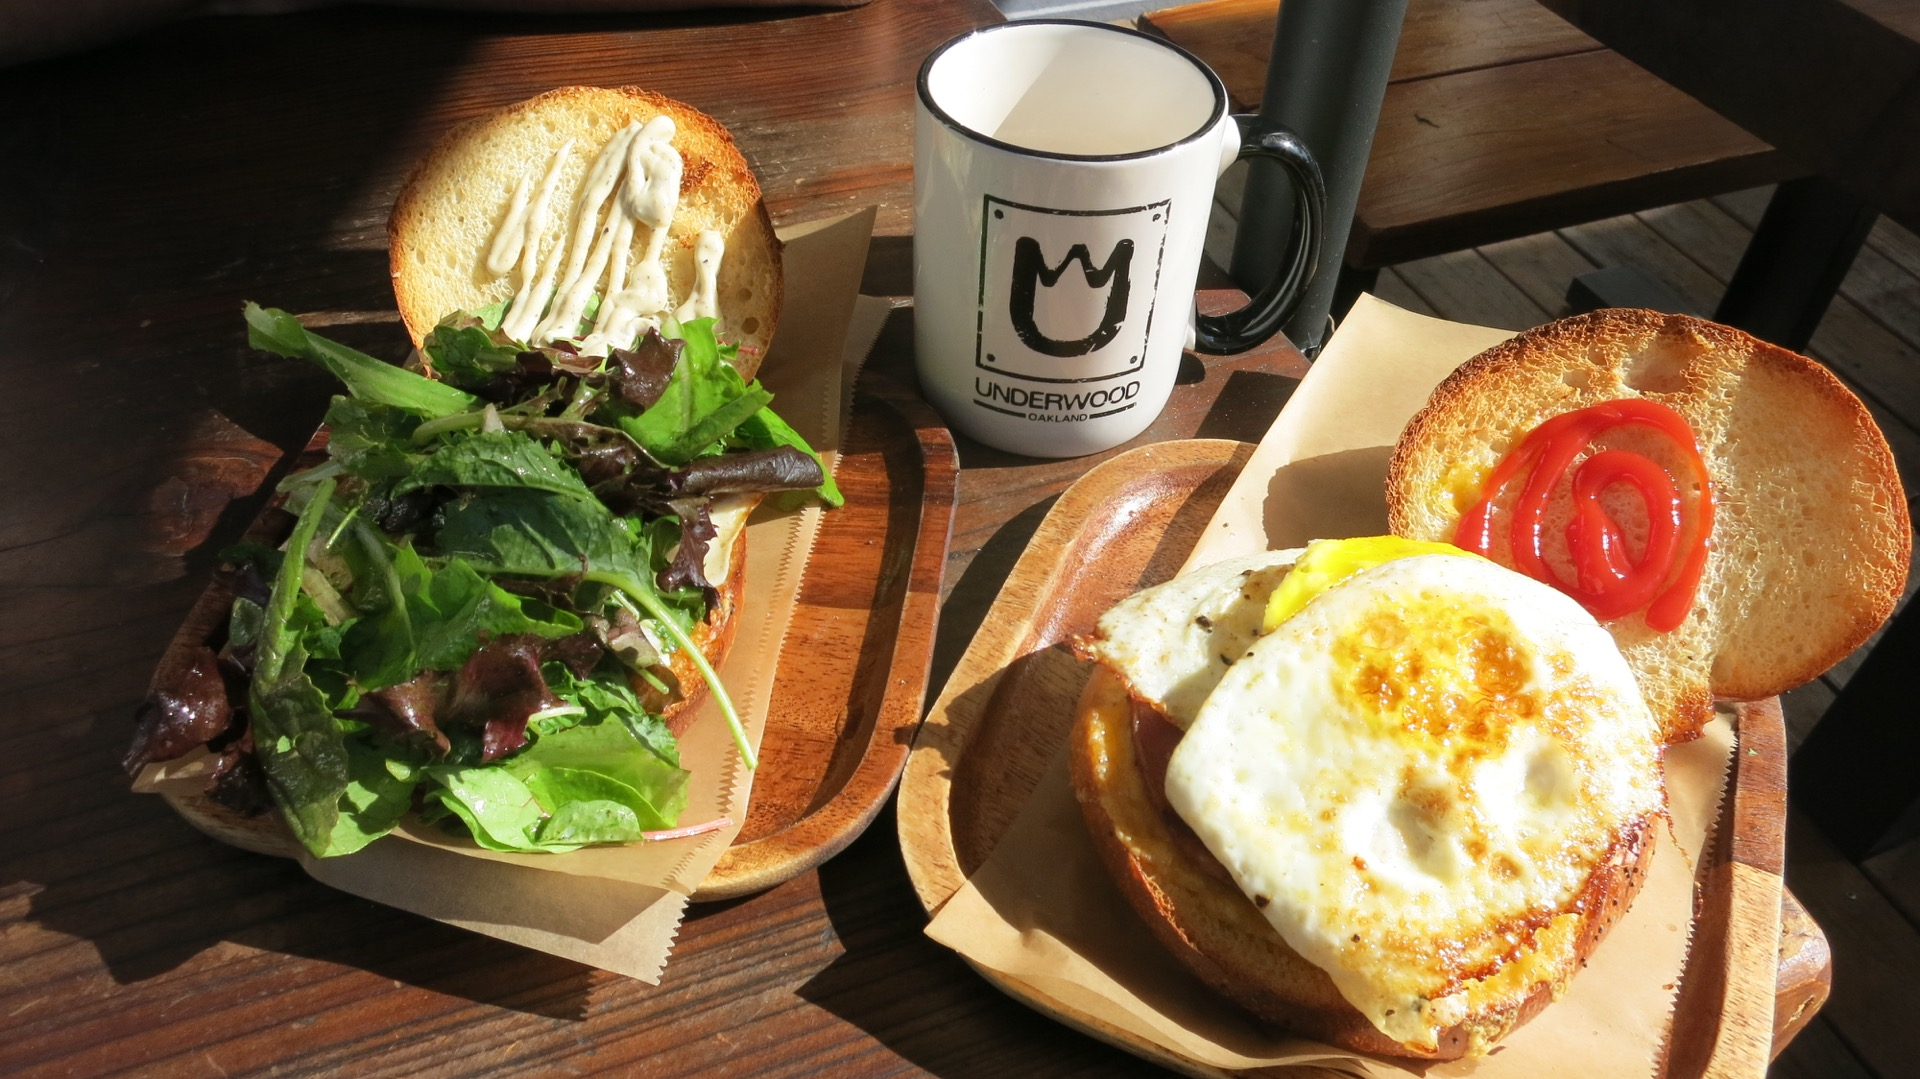 The Yoakland and Jersey Breakfast sandwiches from Oakland's Cafe Underwood are inspired takes on what you'd find in delis in the tri-state area.